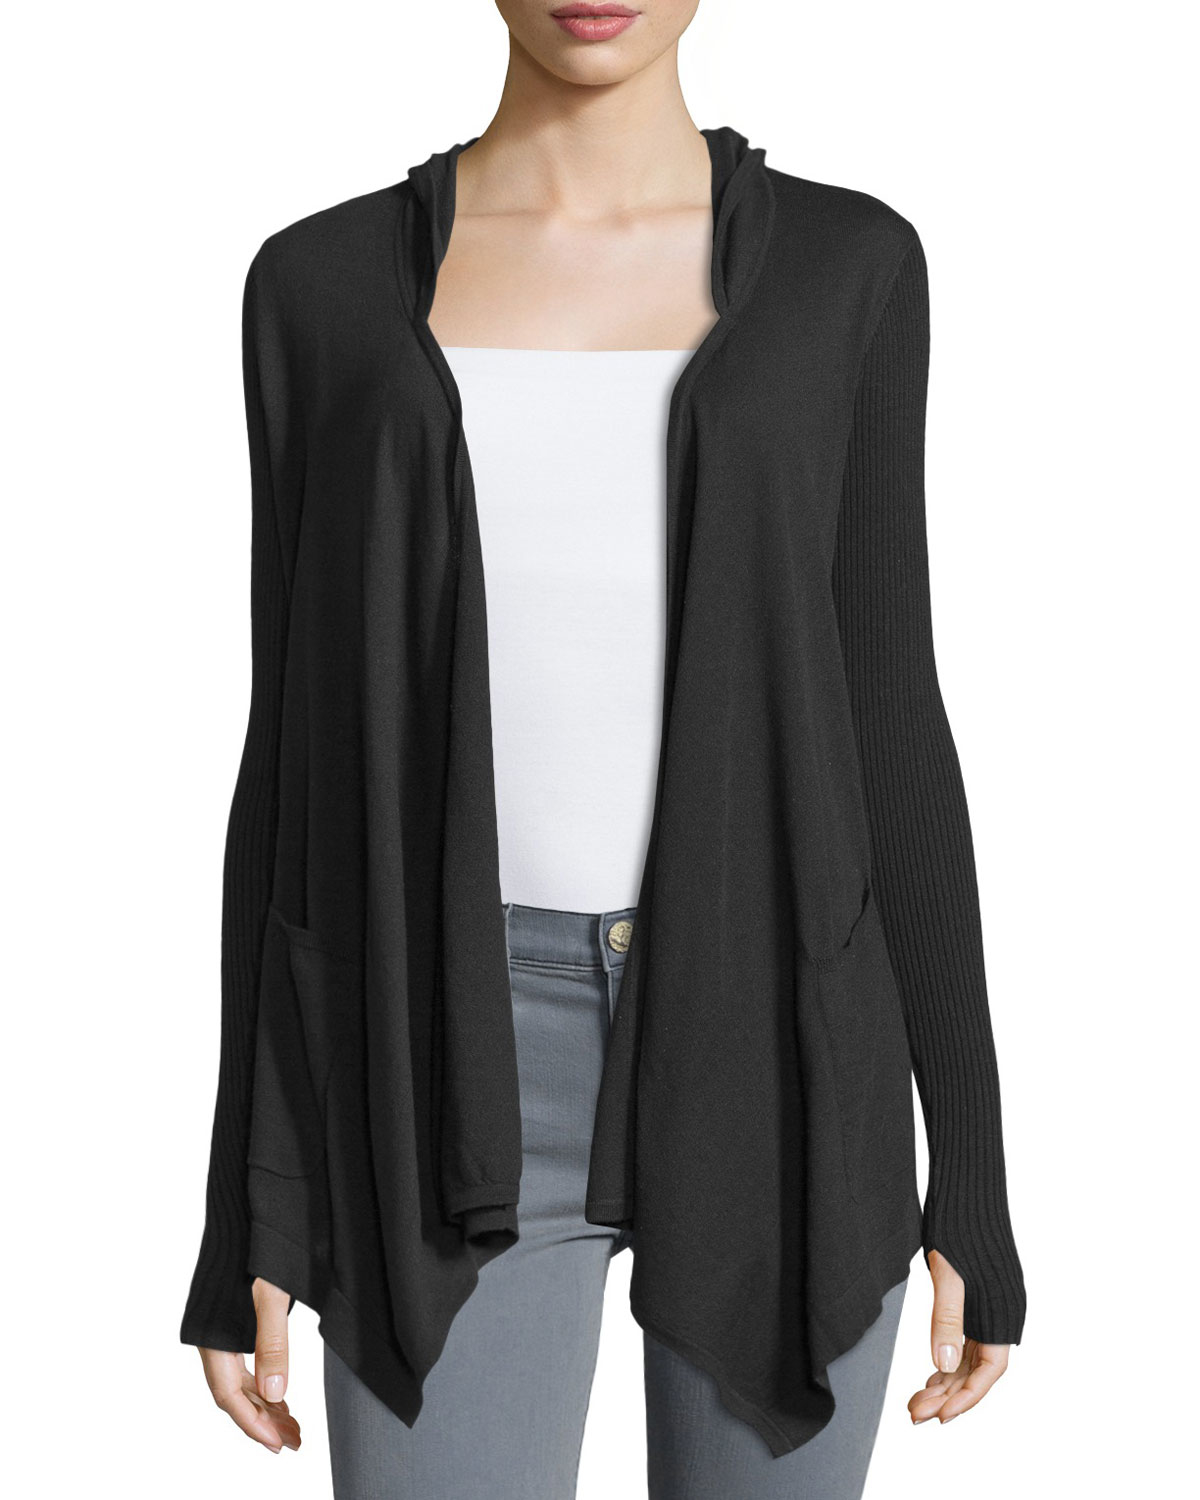 Minnie rose Cotton Hooded Open-front Duster Cardigan in Black | Lyst